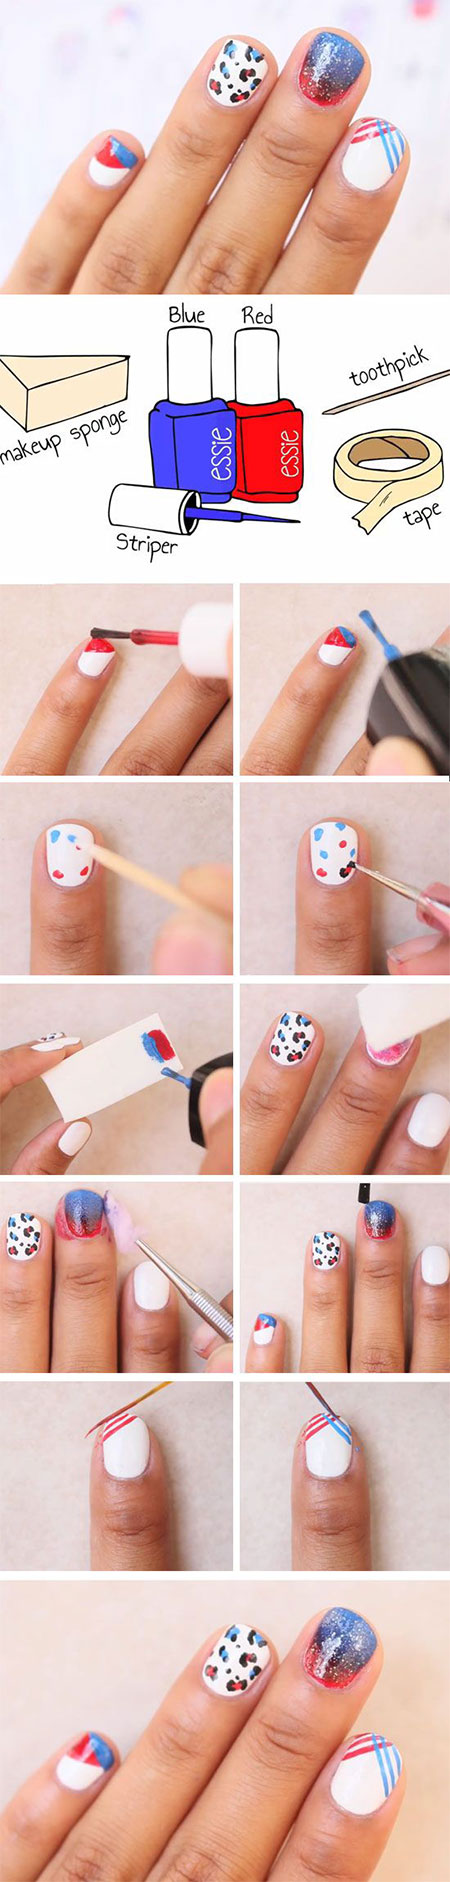 15-Easy-Simple-4th-of-July-Nail-Art-Tutorials-For-Learners-2016-10